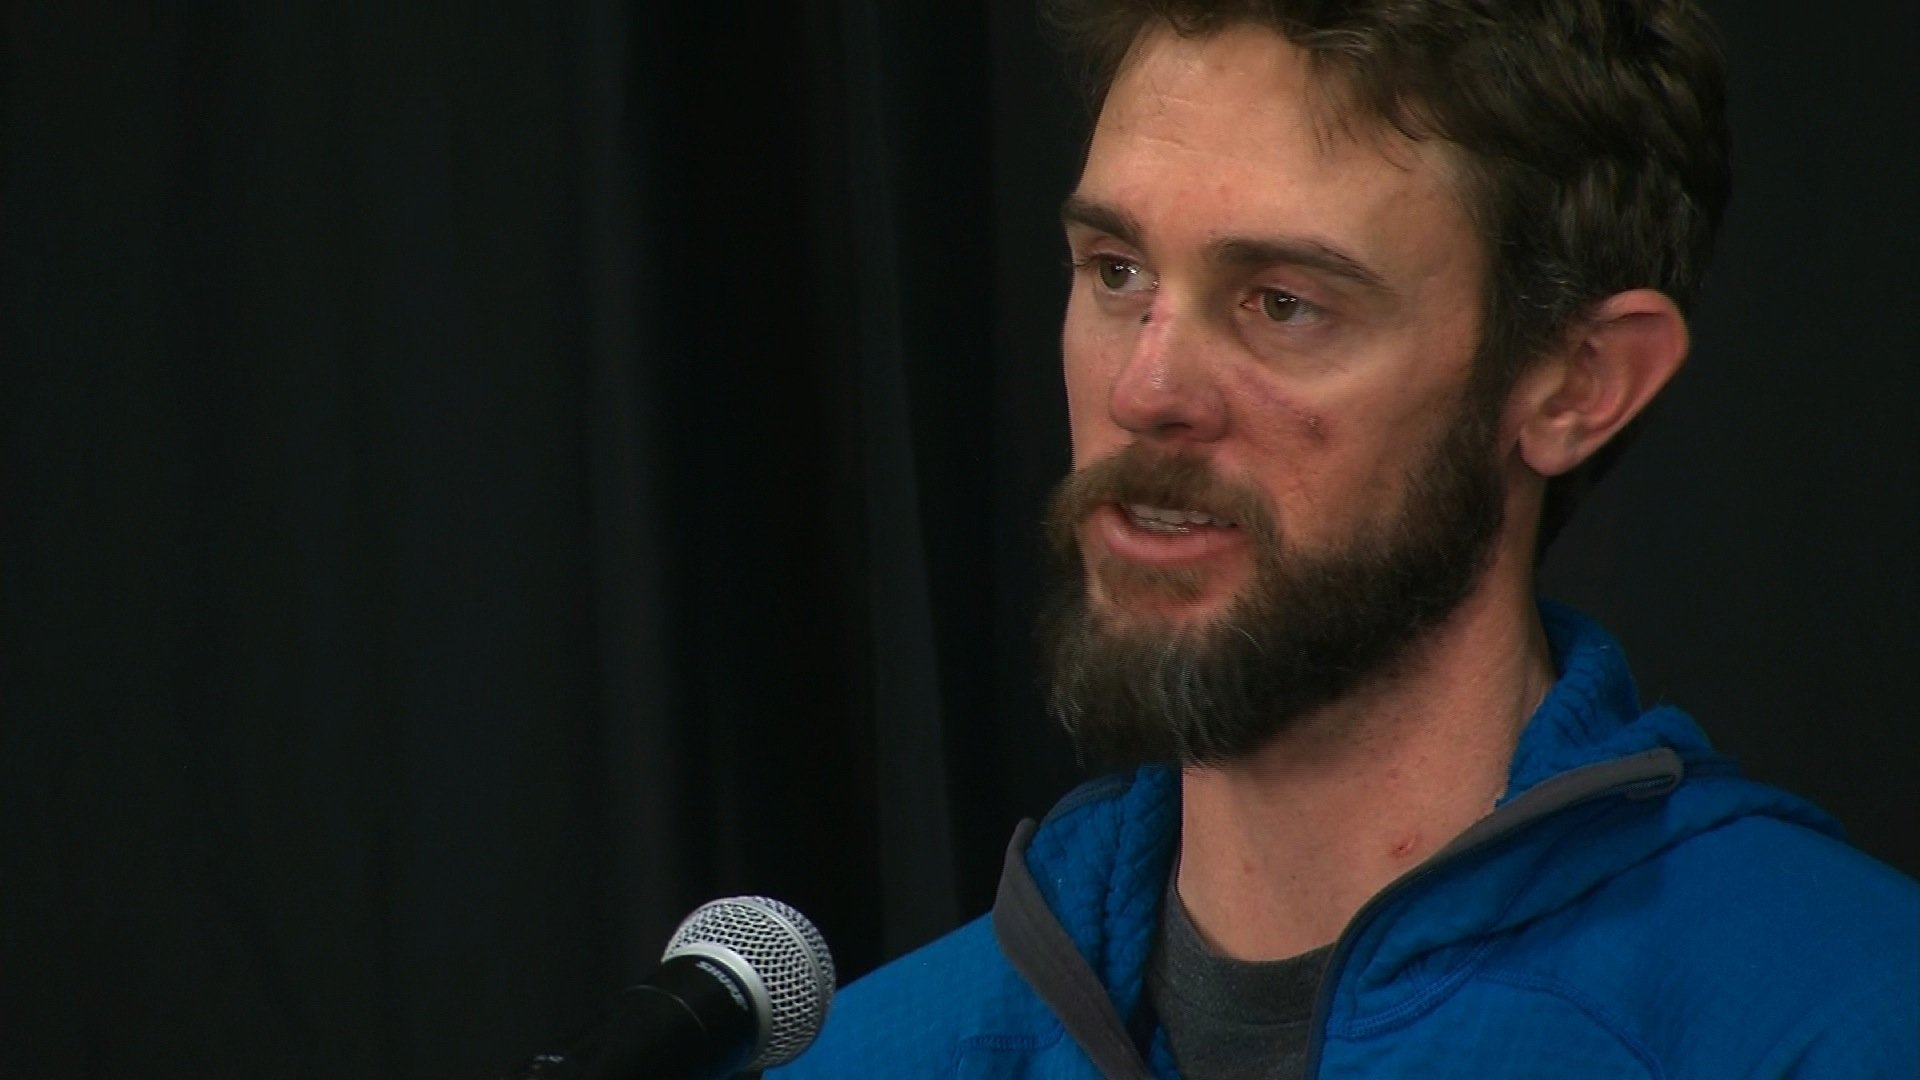 Travis Kauffman speaks about surviving a mountain lion attack in this undated photo. (Credit: CNN)